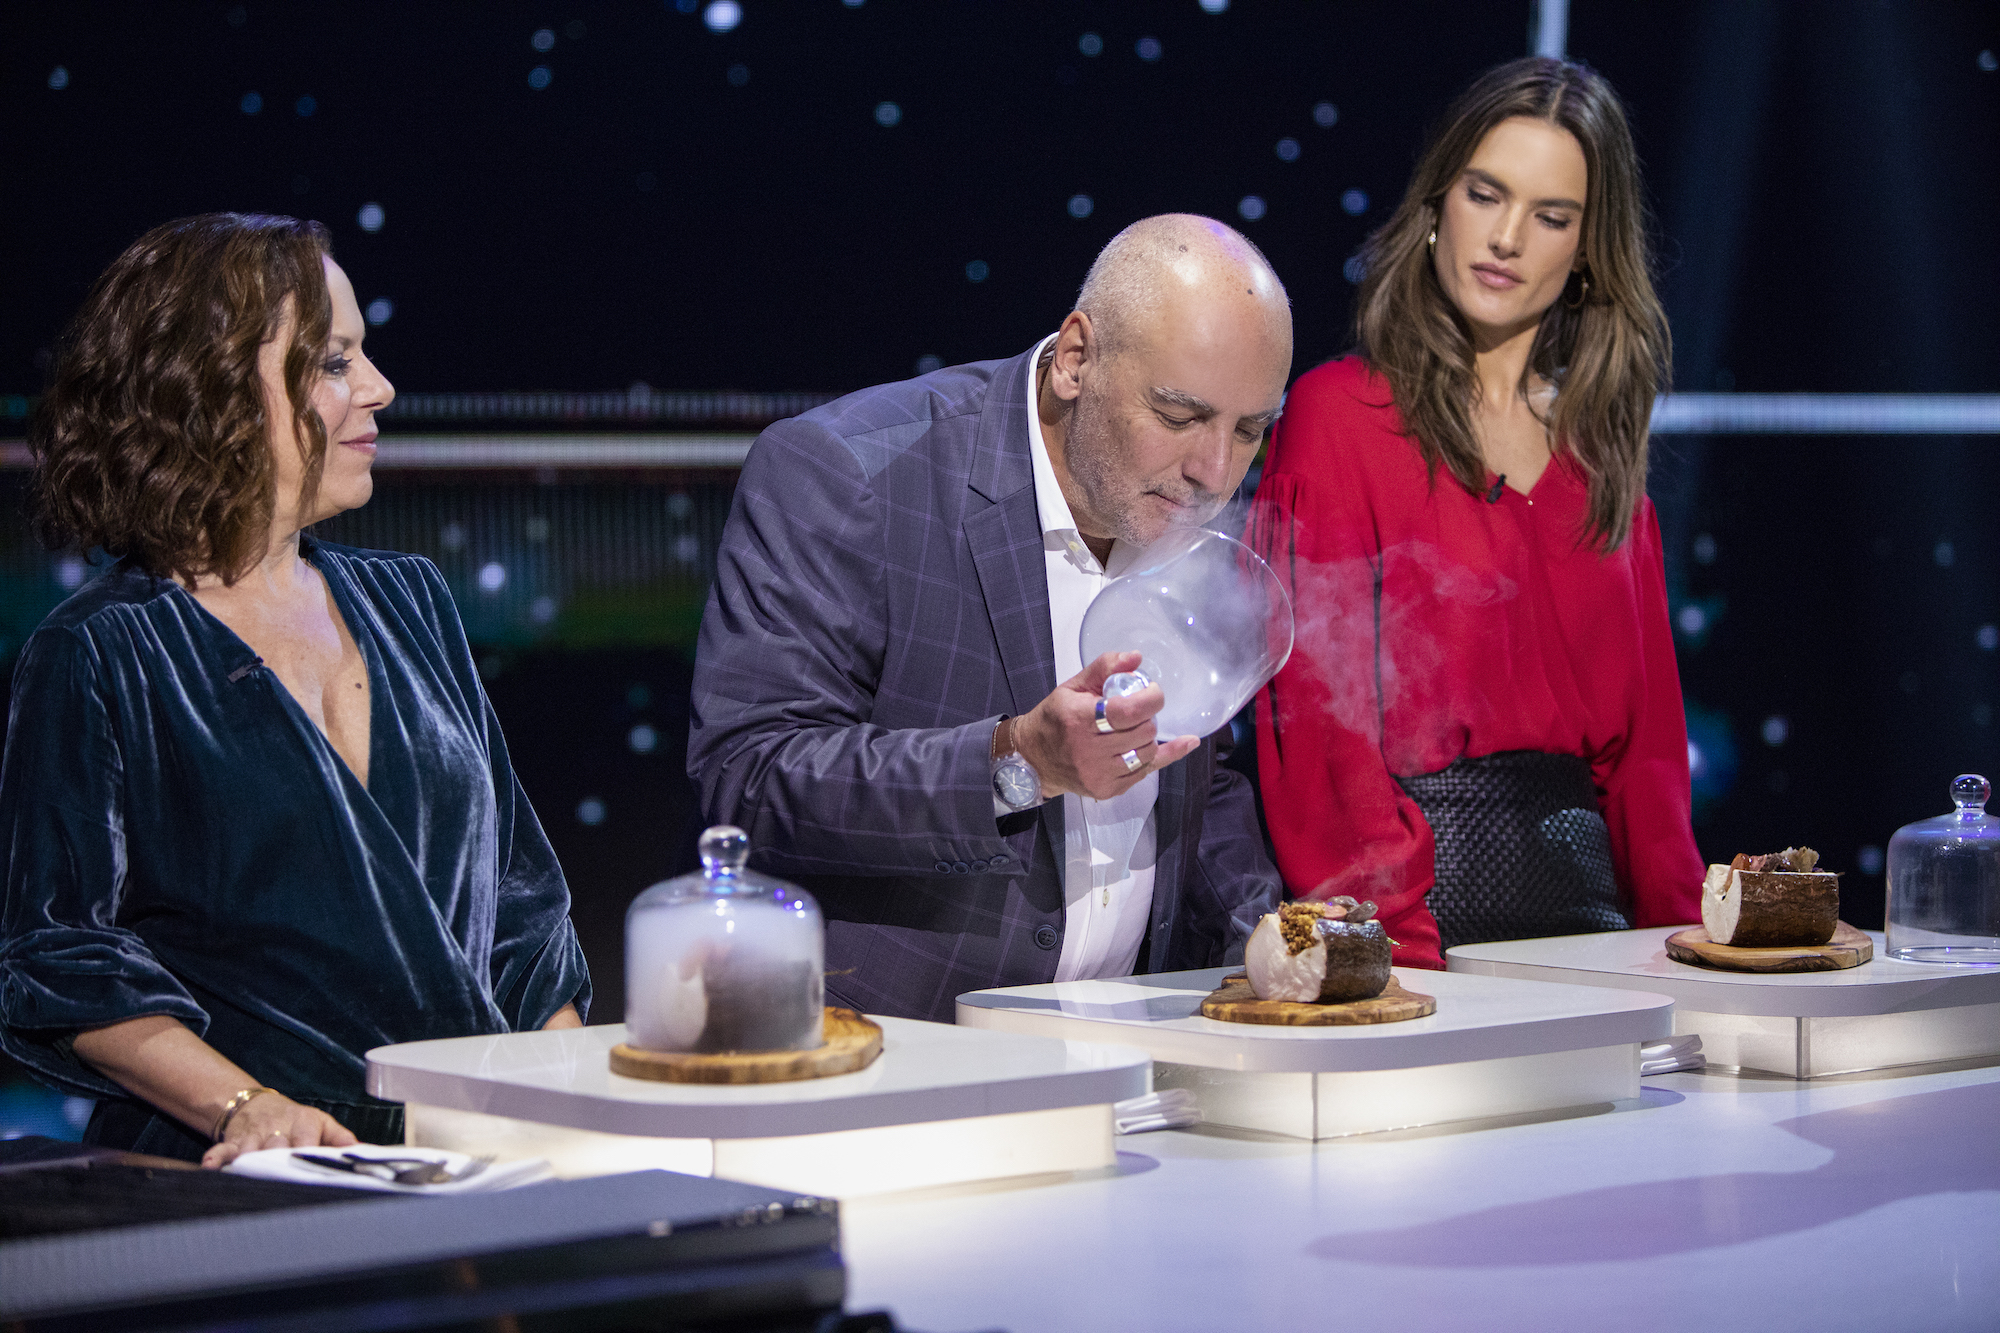 Final Table Netflix S Food Competition Show Is A Mess Quartz